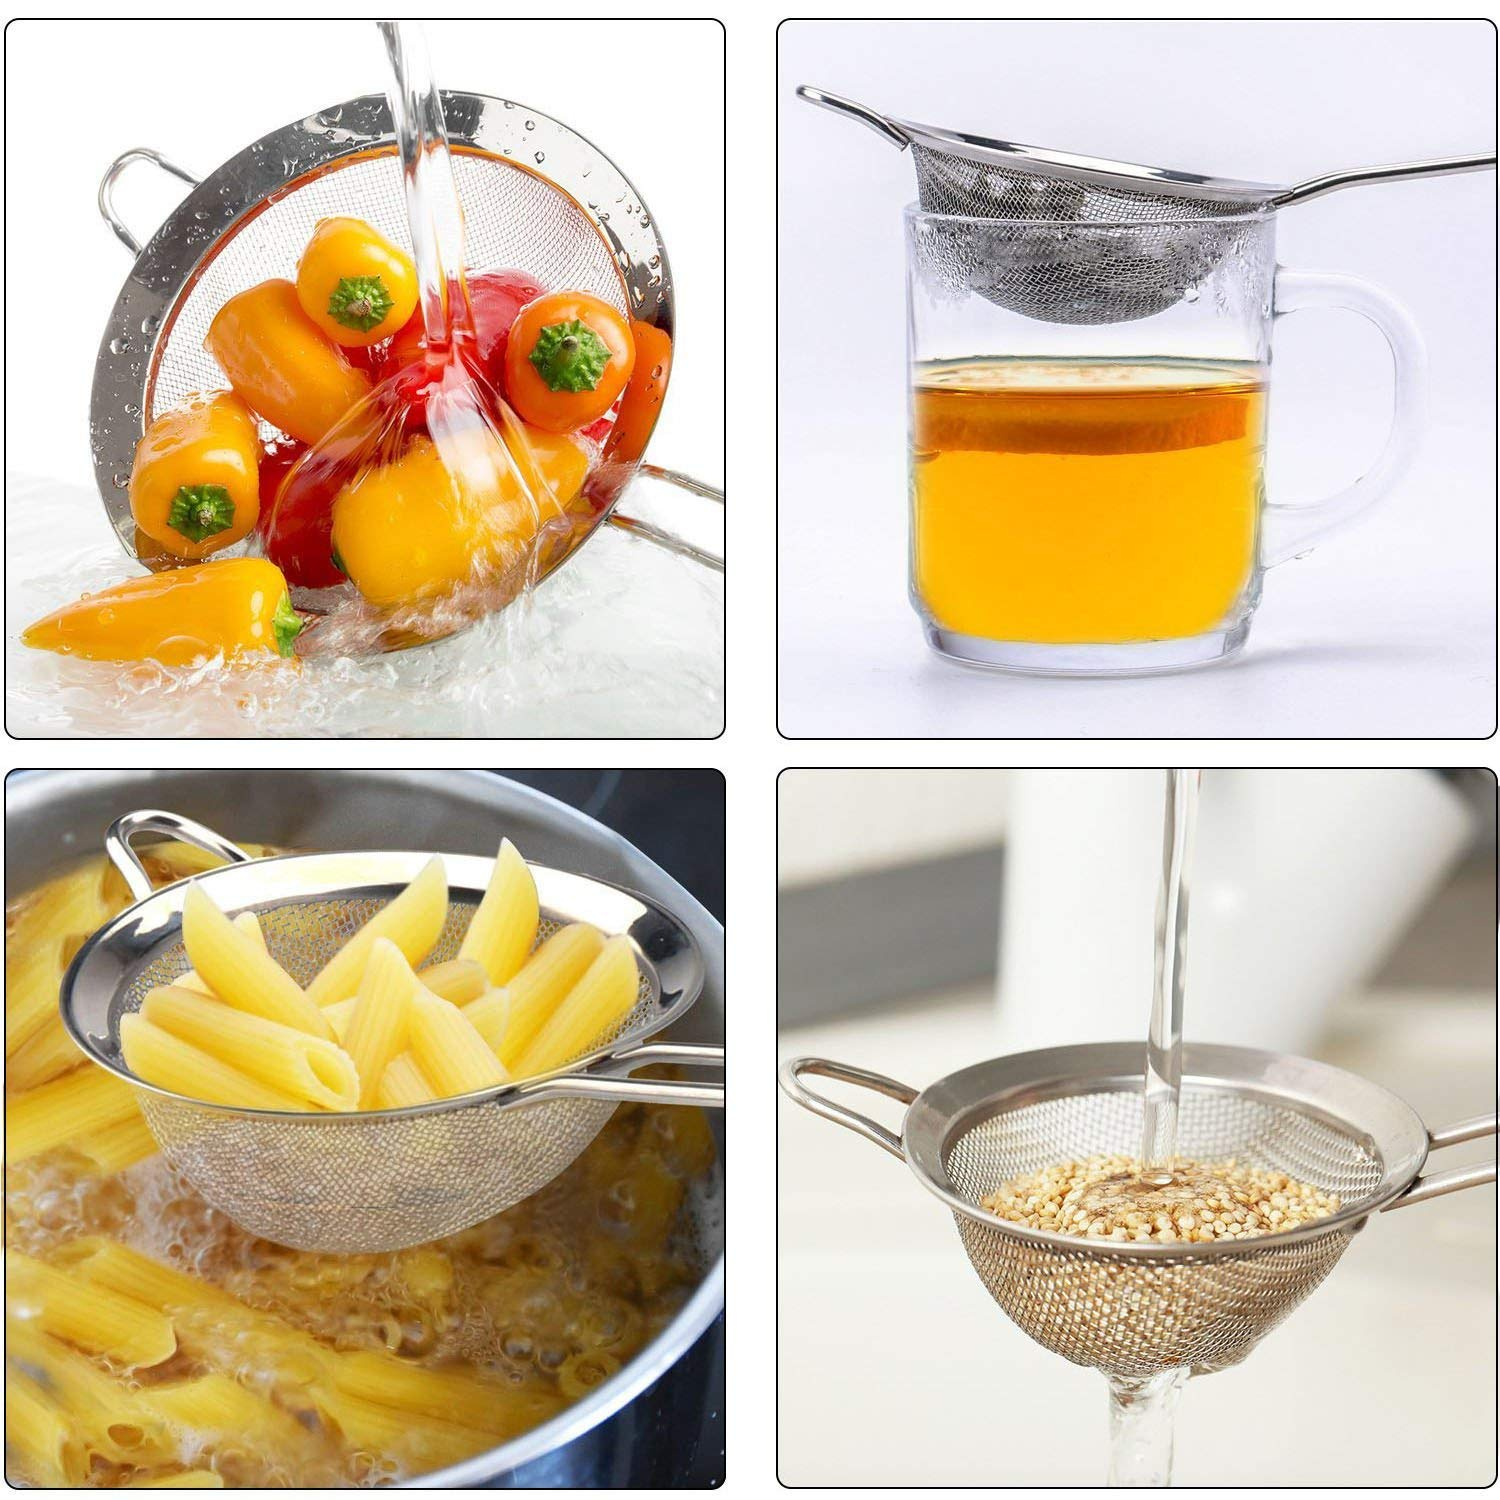 Flour Juice Wellehomi Premium Fine Mesh Strainers Quinoa,Tea Hot Pot Set of 3 for Baking and Cooking and So on Stainless Steel Kitchen Fine Sieves Strainers with Long Handles